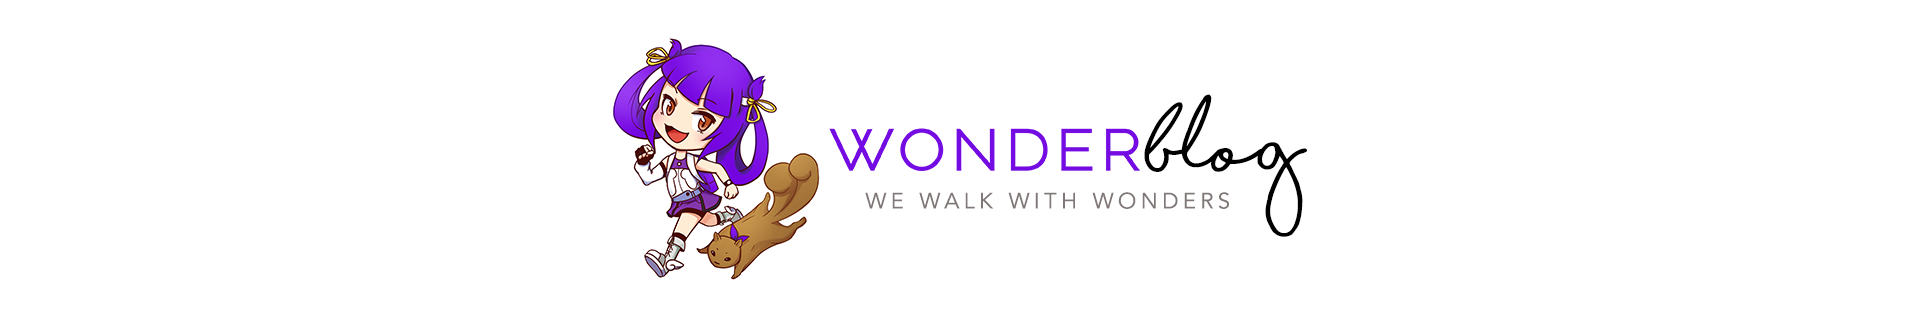 Travel with Wonderfly - Blog